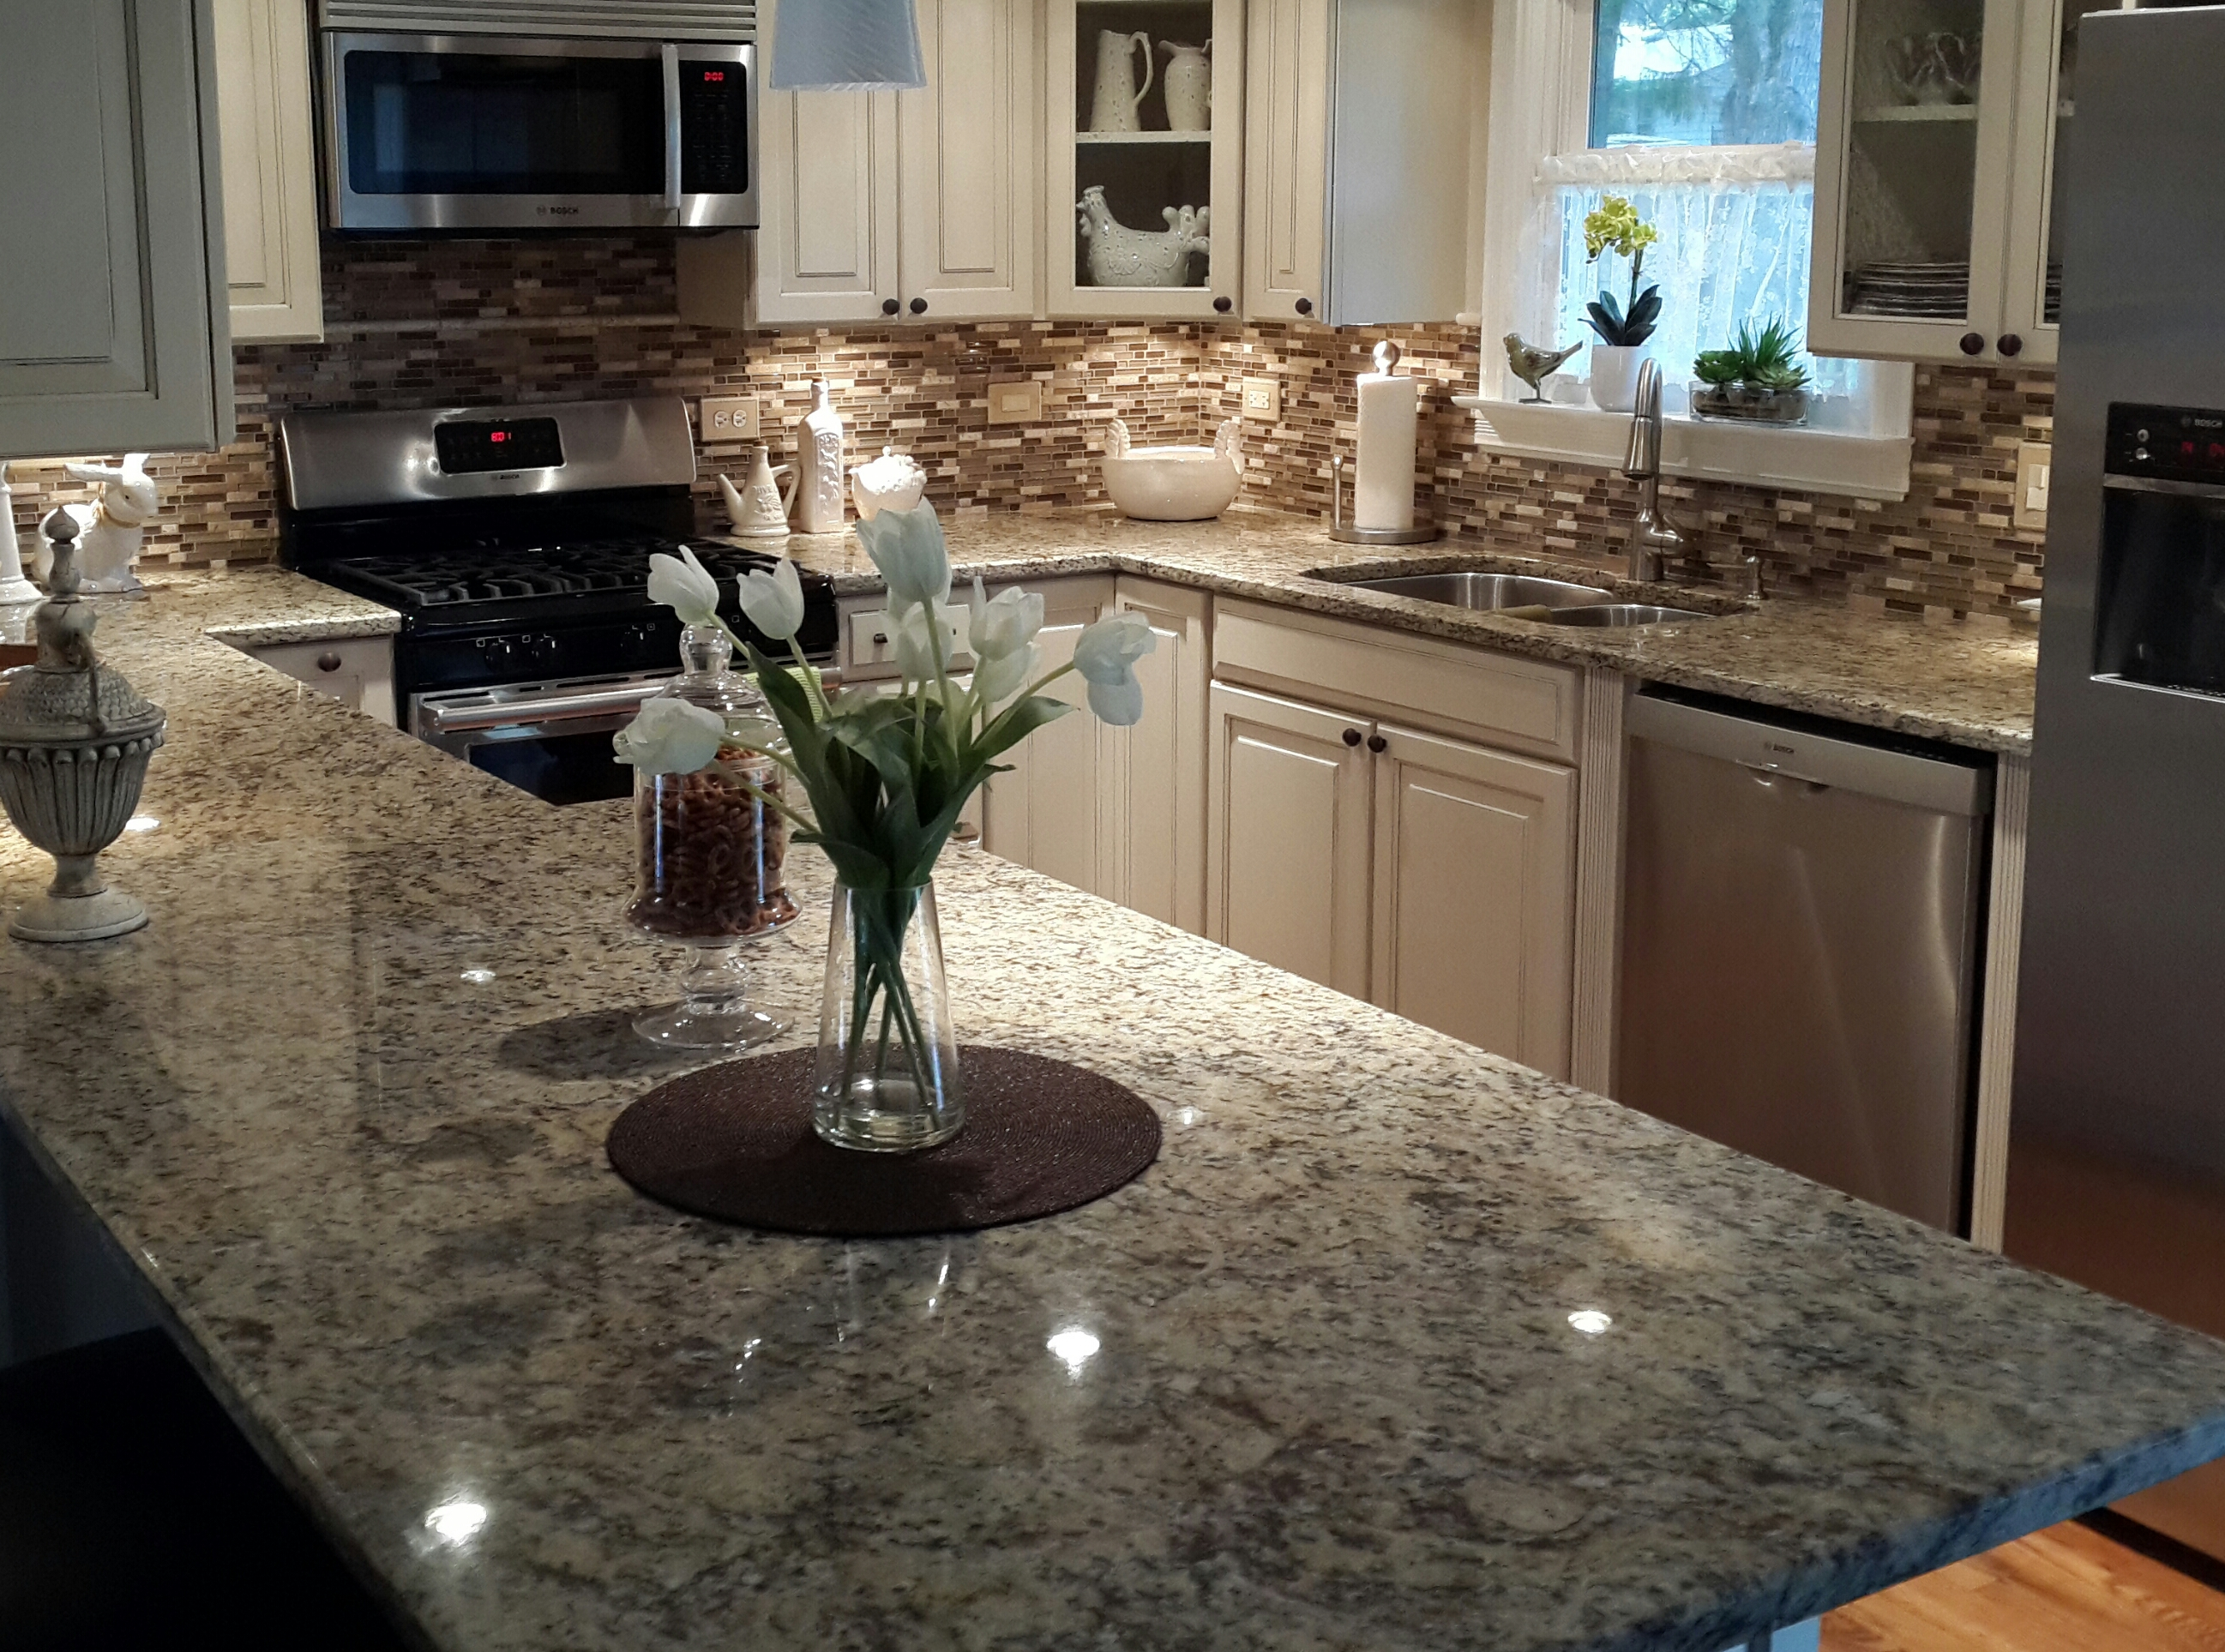 modernist prices small of colors countertops best installation kitchen icon and granite wonderful black affordable for installed inspirational prefabricated cost top marble stone like honed worktops exotic